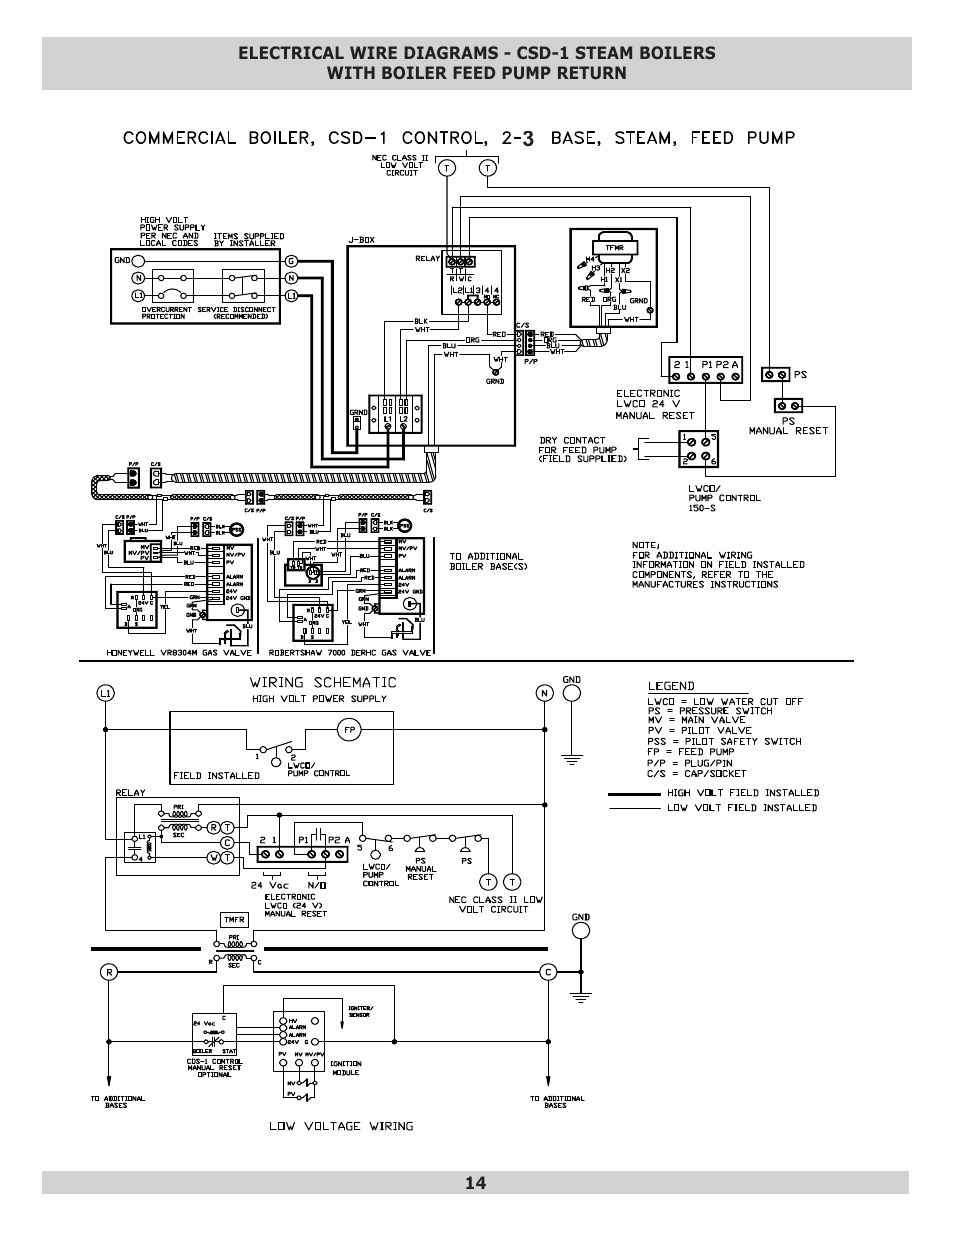 Utica Steam Boiler Wiring Diagram Diagrams Residential For Vox Wah